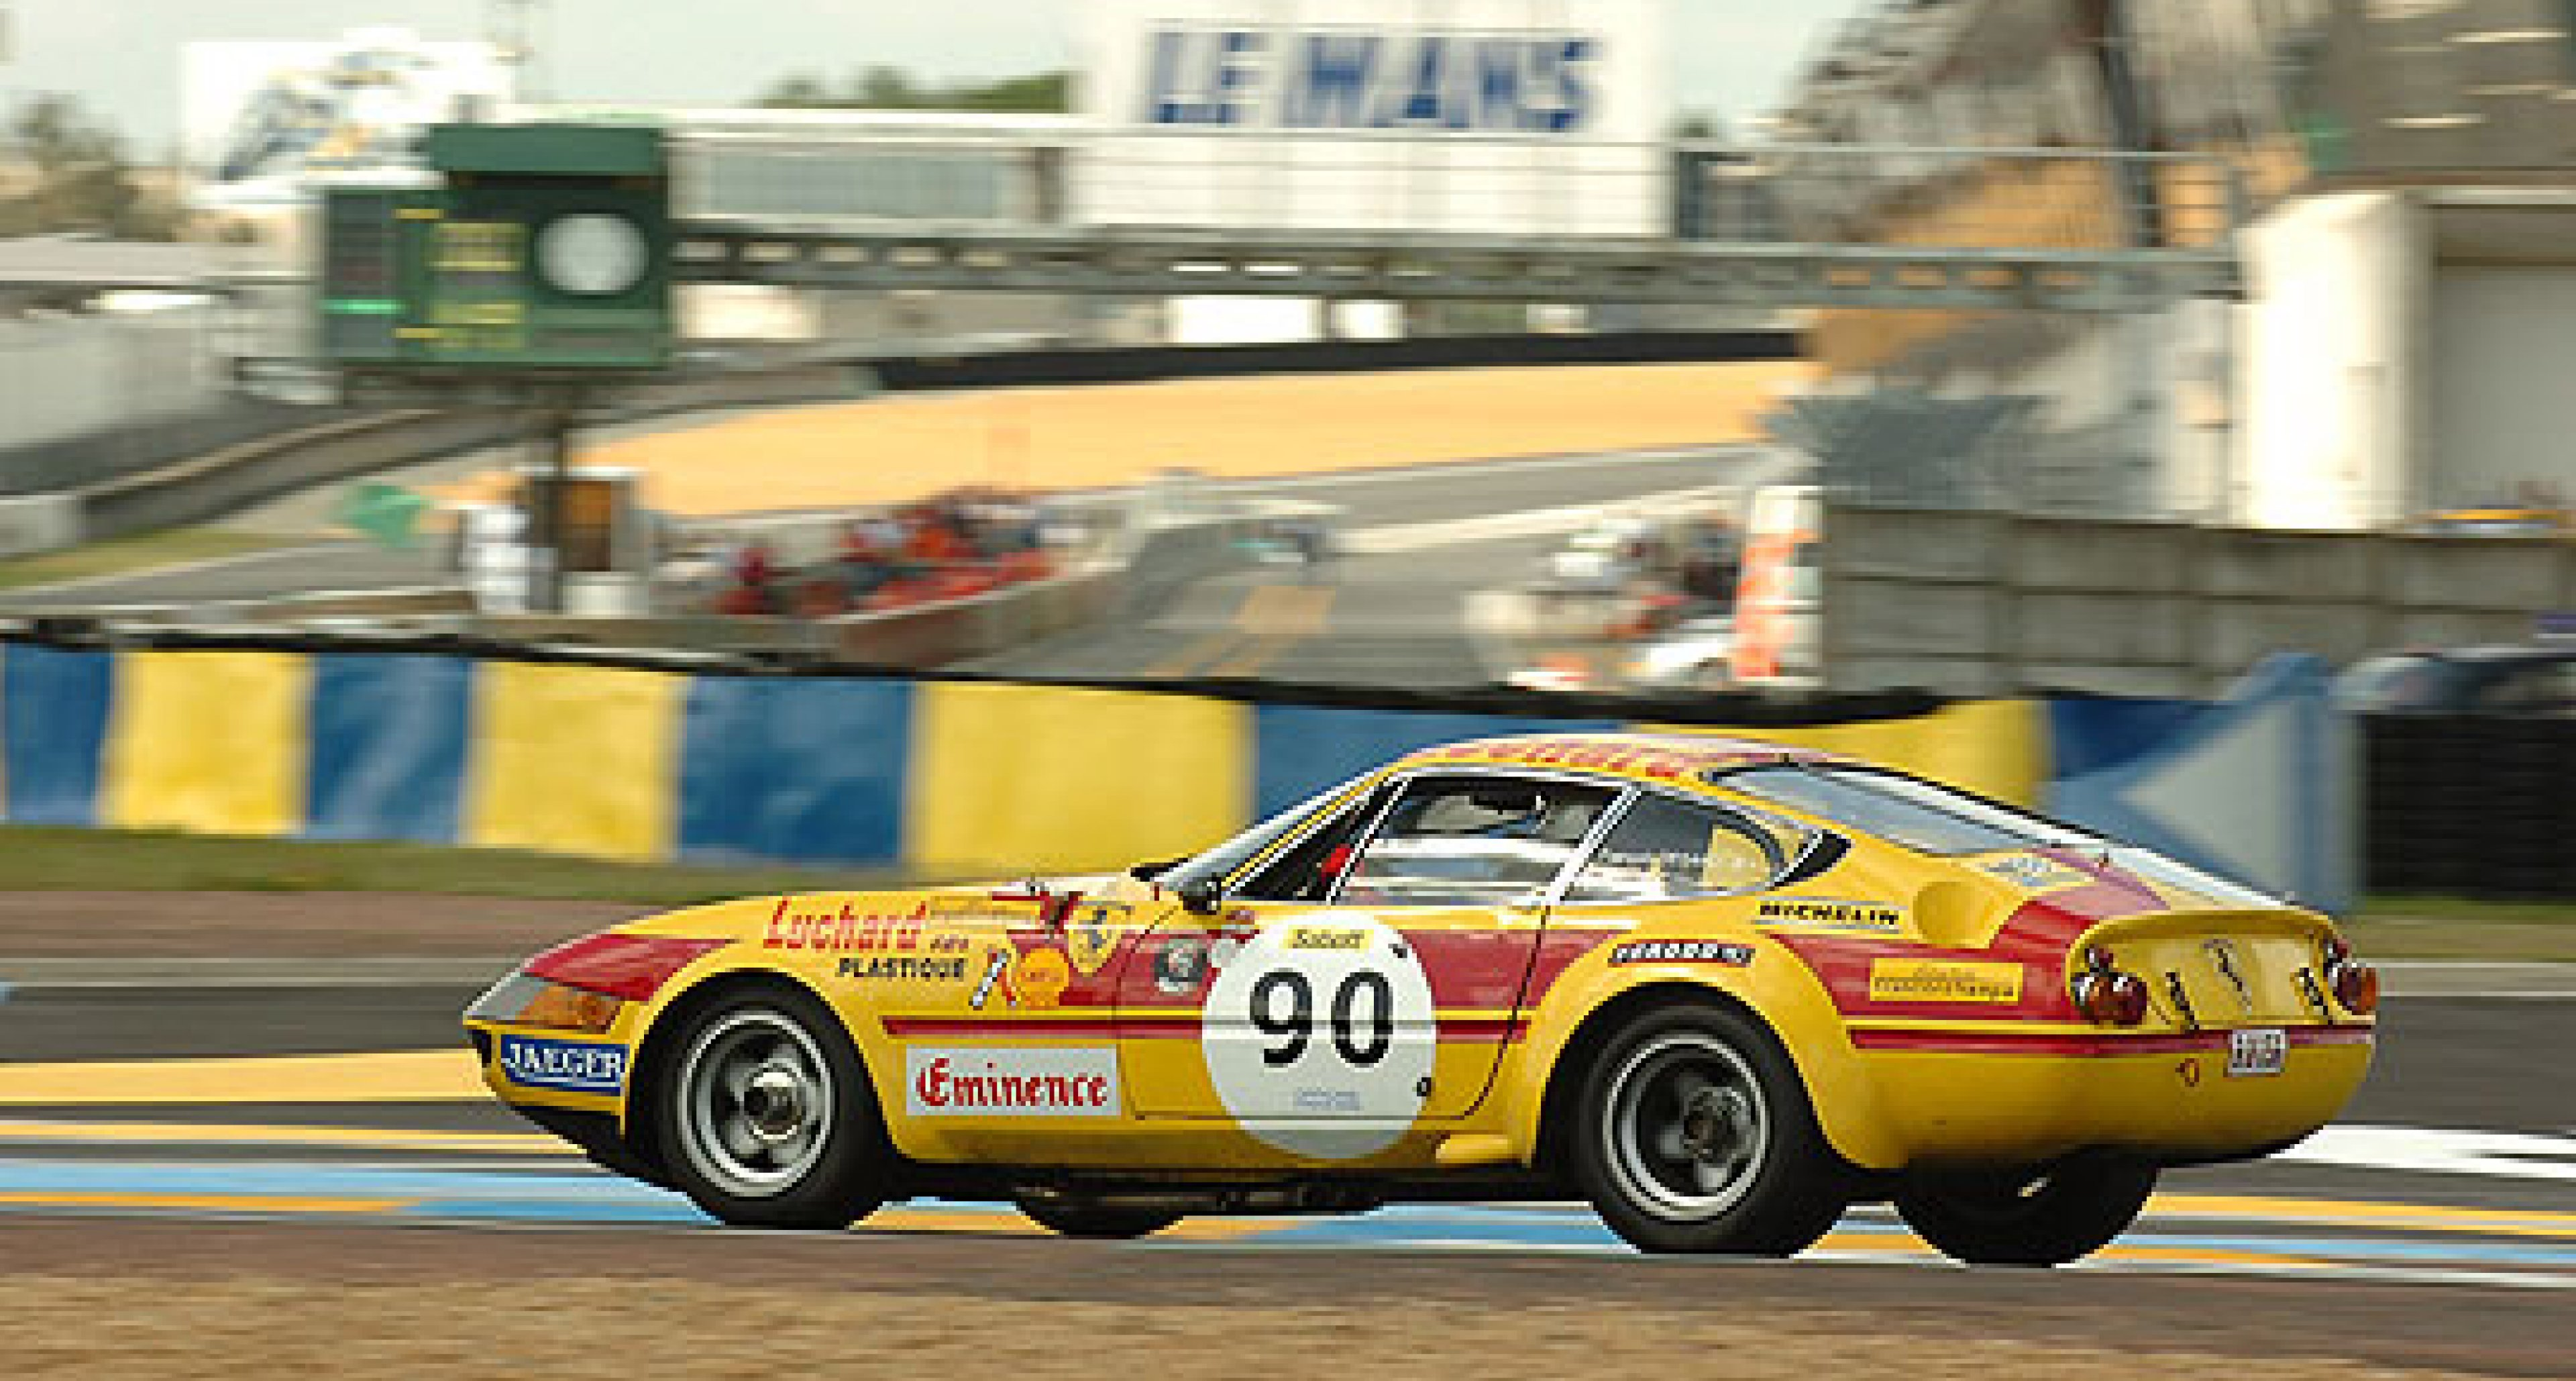 Shell Ferrari Historic Challenge at Le Mans - July 2007